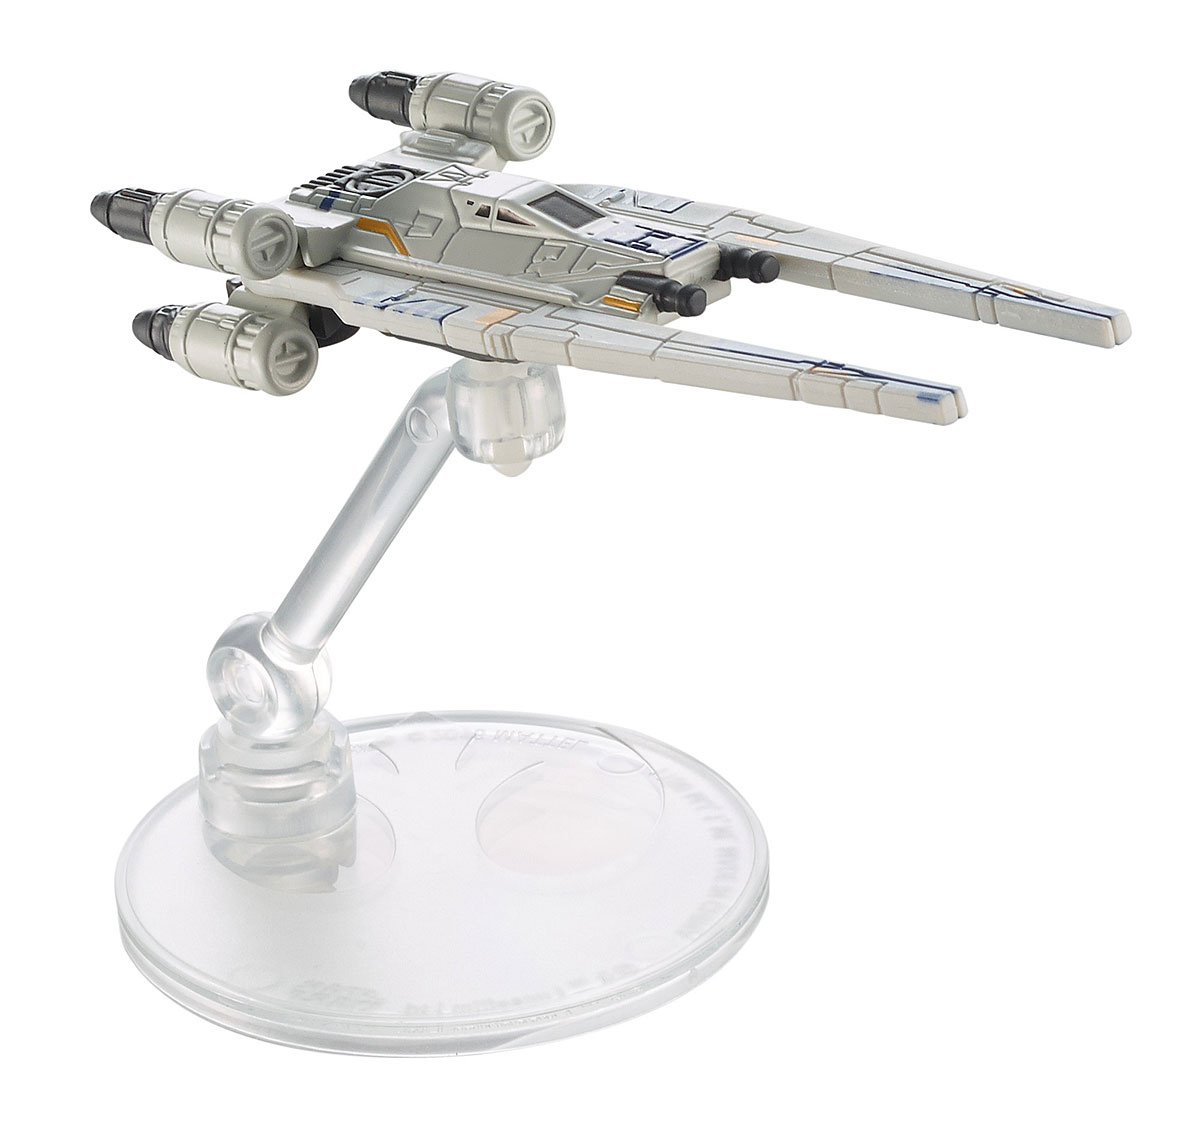 Hot Wheels Star Wars Космический корабль Rebel U-wing Fighter - Транспорт, машинки